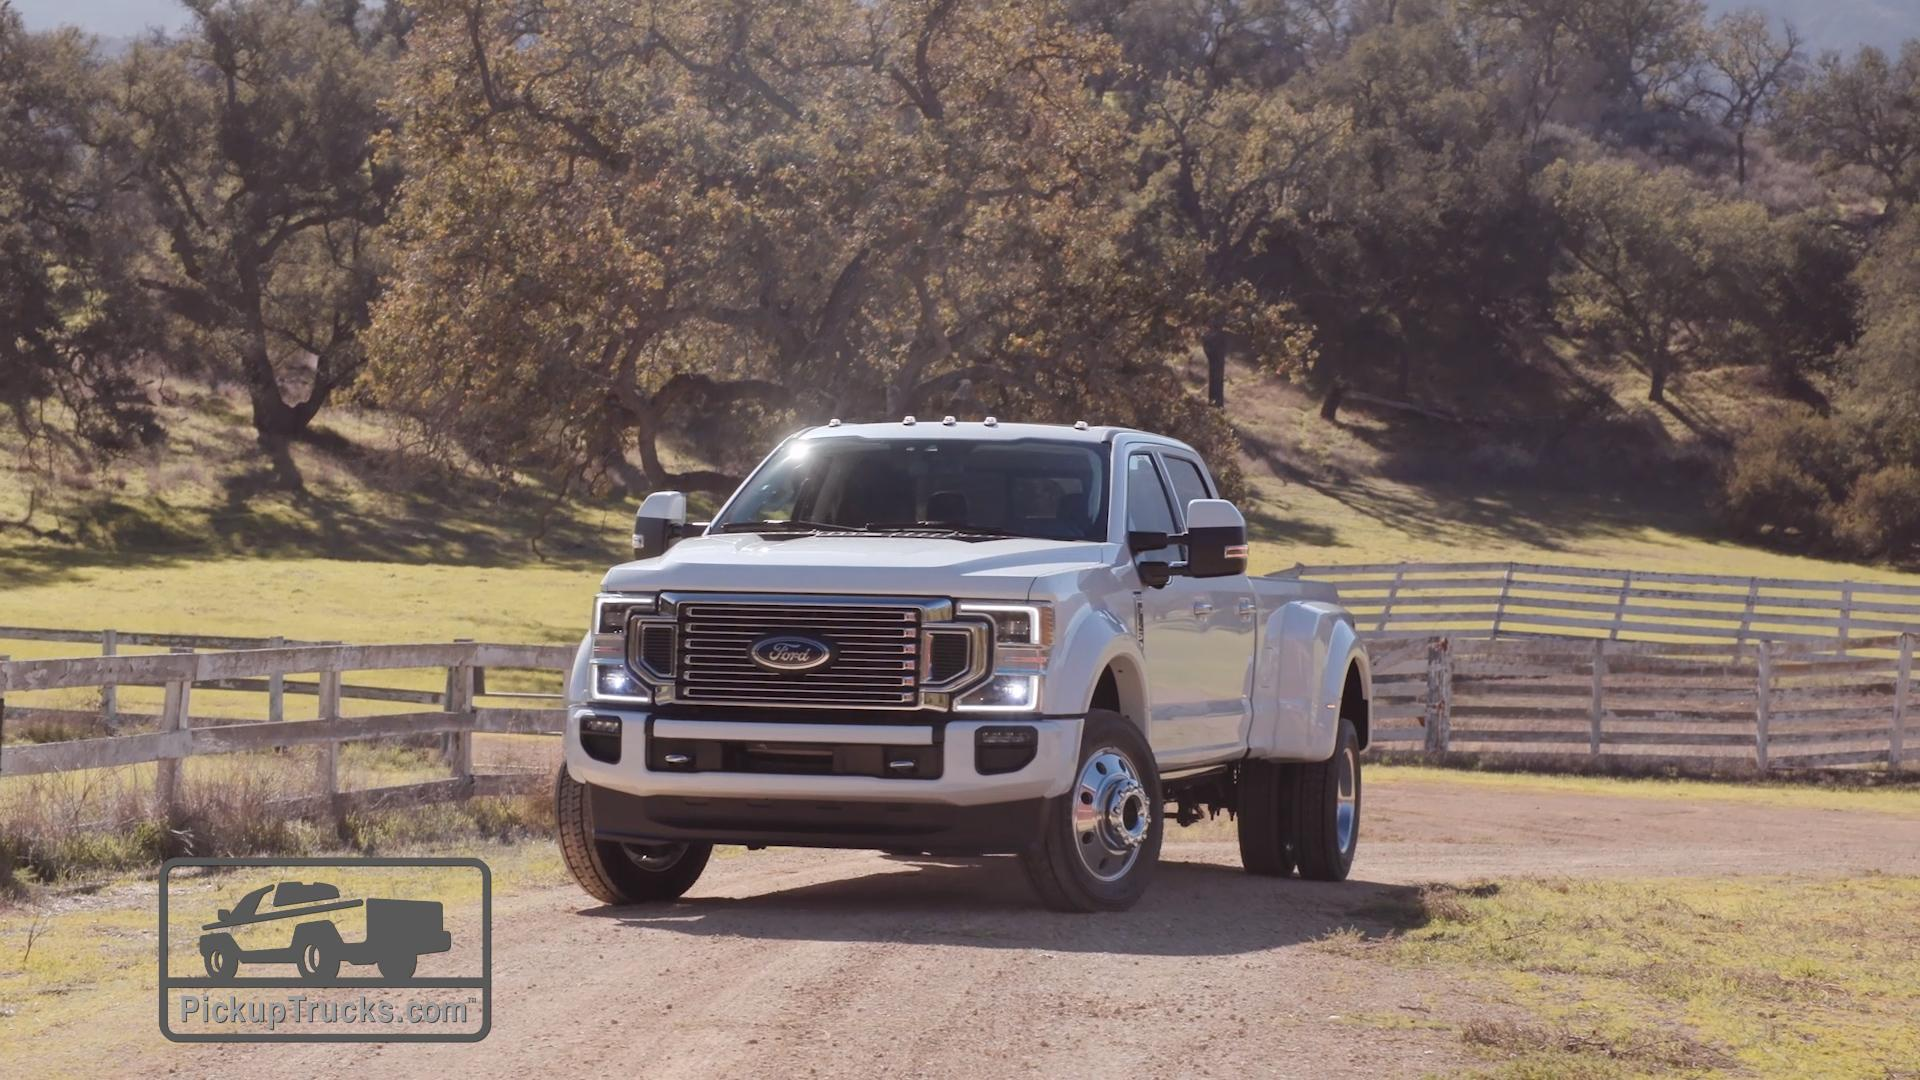 2020 ford f 250 f 350 and f 450 video inside outside and under the hood pickuptrucks com news [ 1920 x 1080 Pixel ]